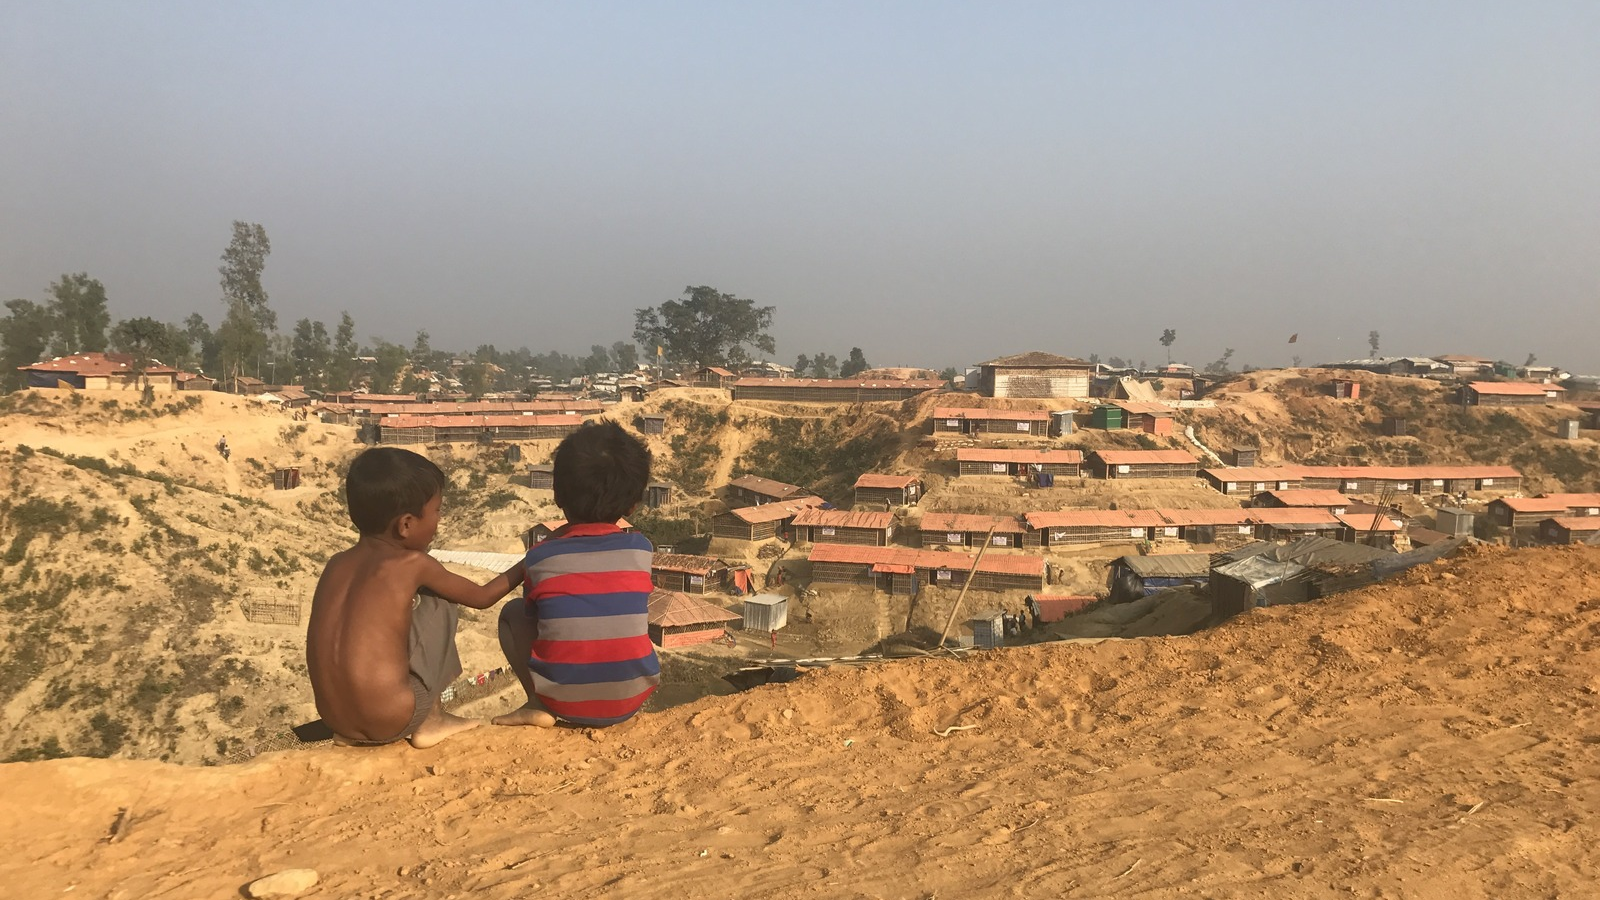 With already tenuous housing, the looming monsoon season threatens Rohingya refugee camps